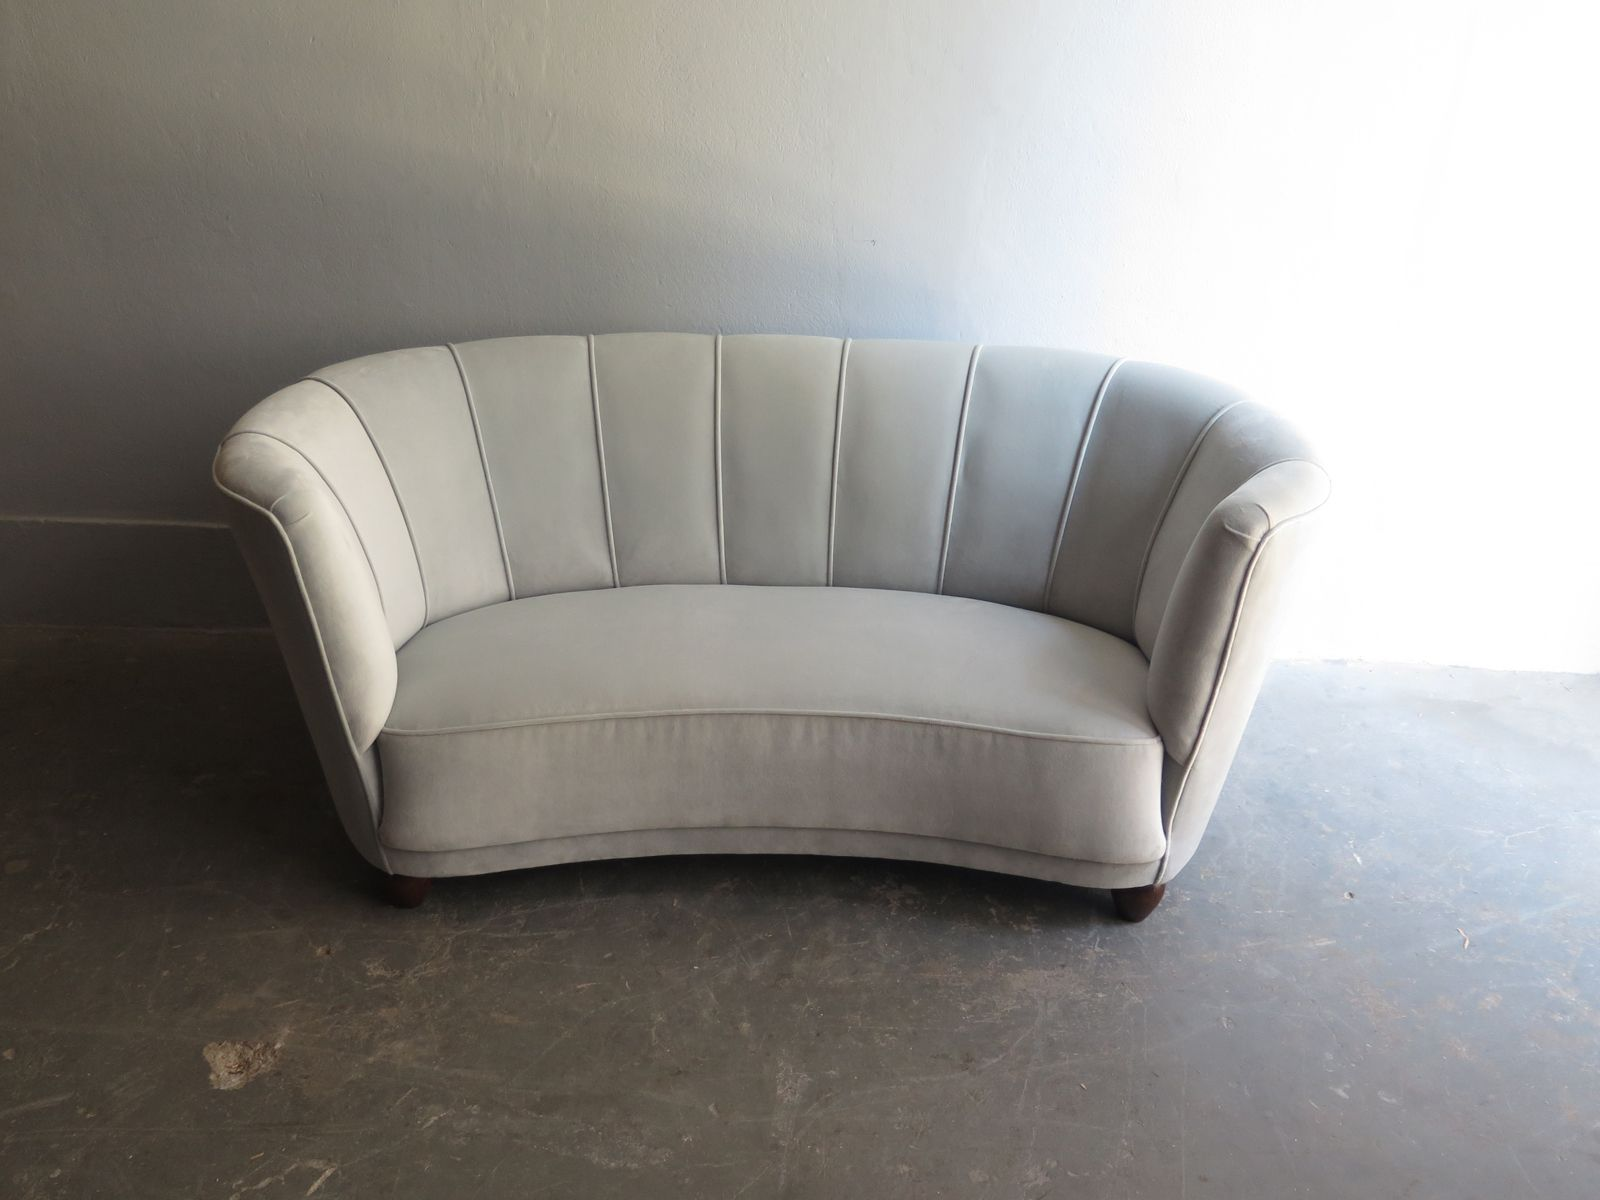 art deco sofa with light grey velvet upholstery for sale. Black Bedroom Furniture Sets. Home Design Ideas